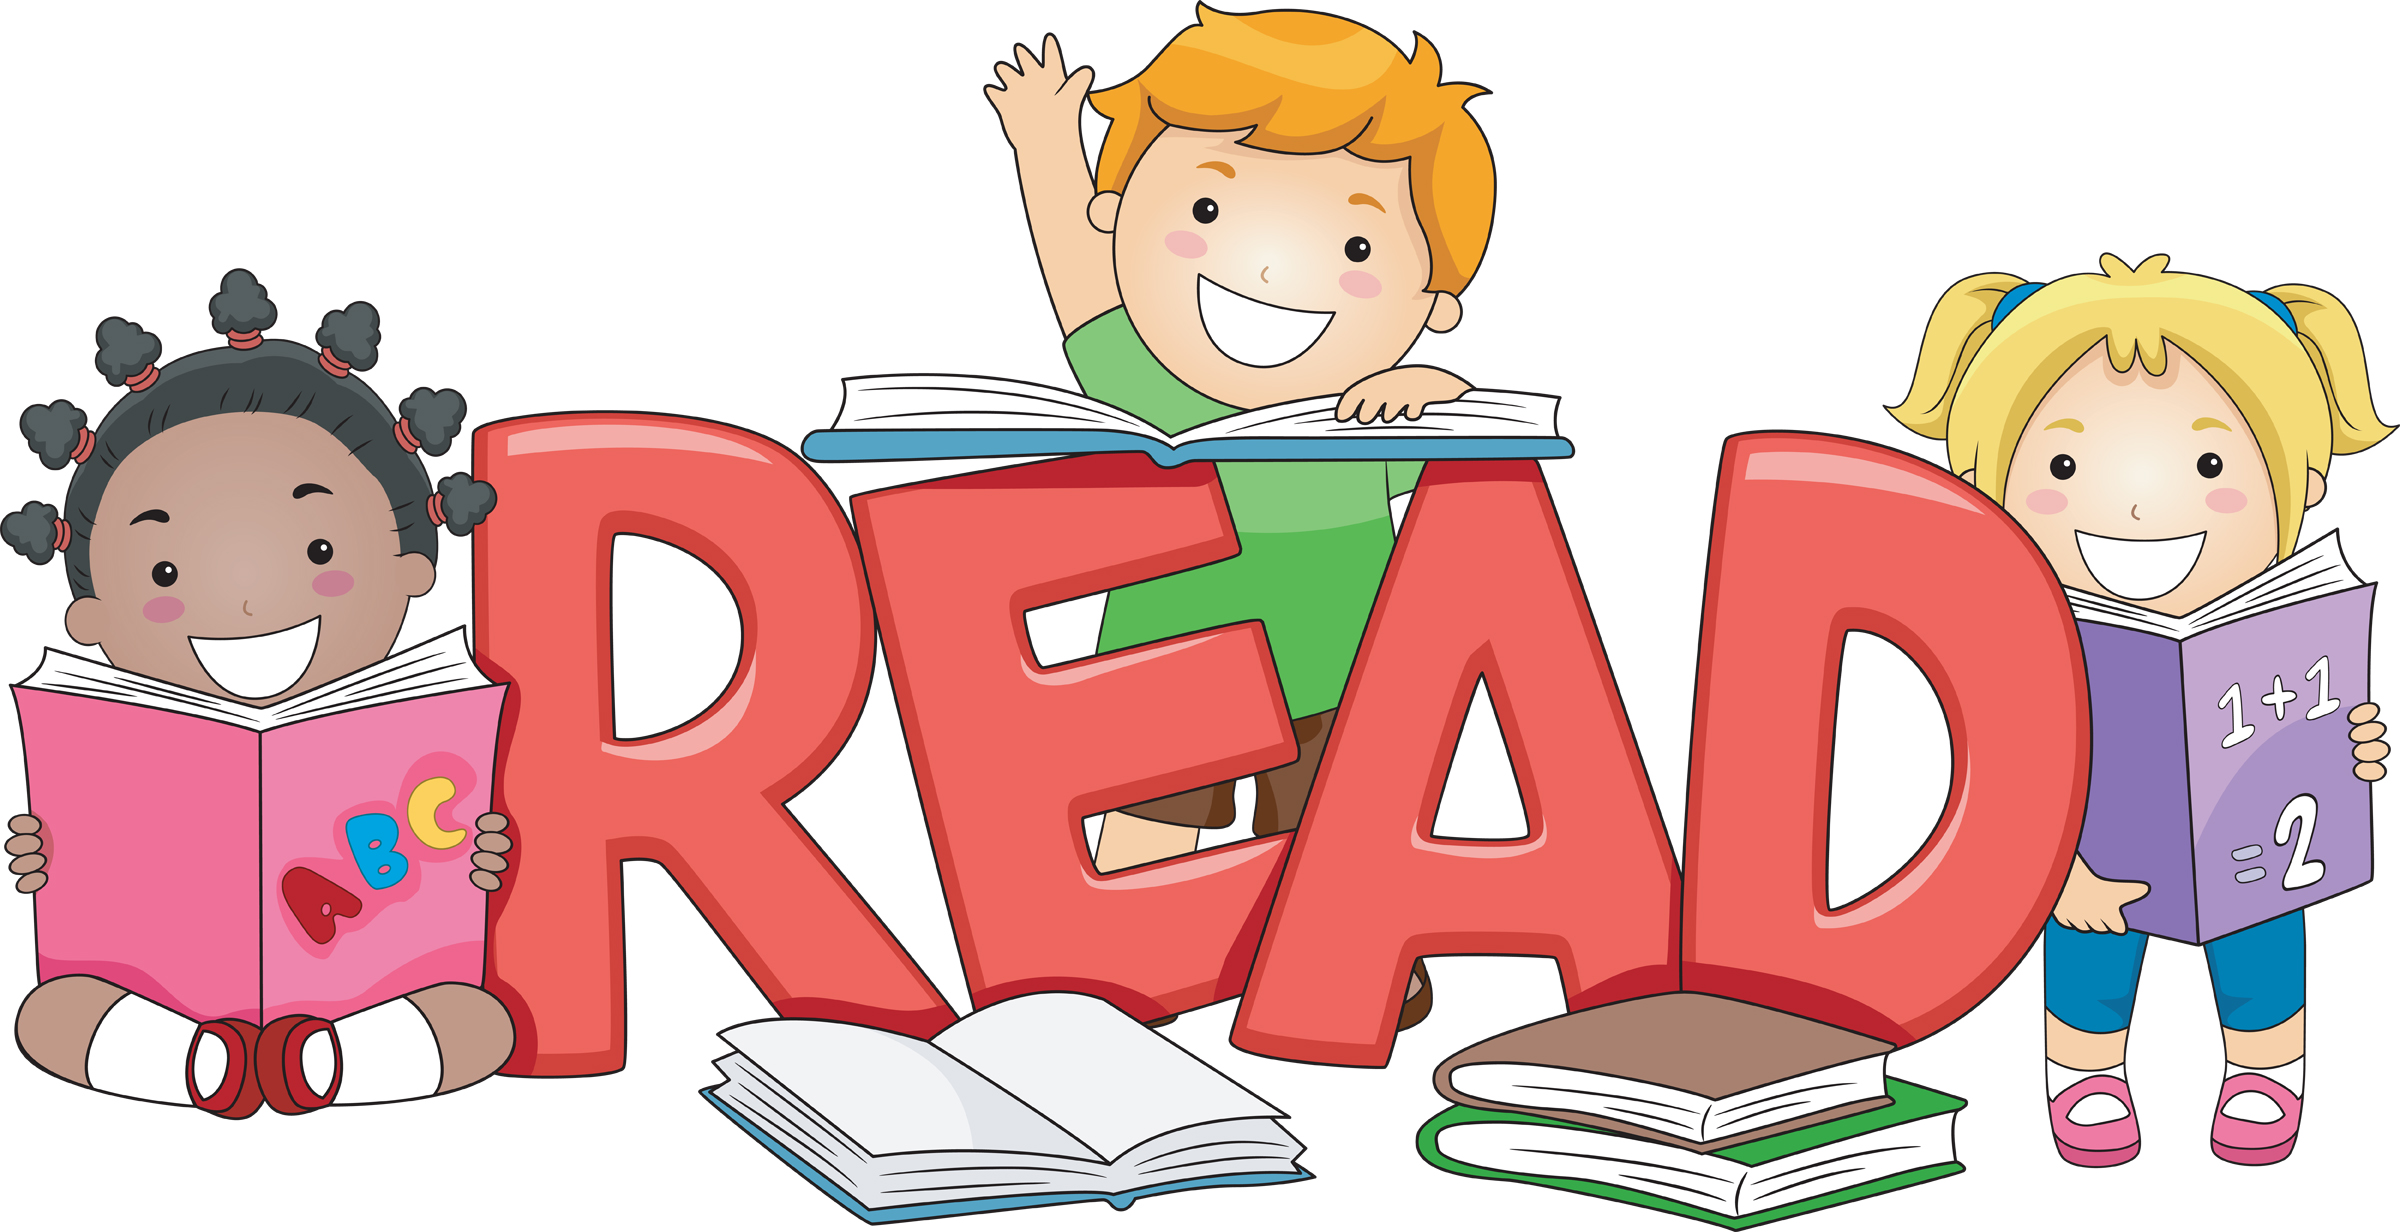 R read clipart banner library download Free Pictures Of A Child Reading, Download Free Clip Art, Free Clip ... banner library download